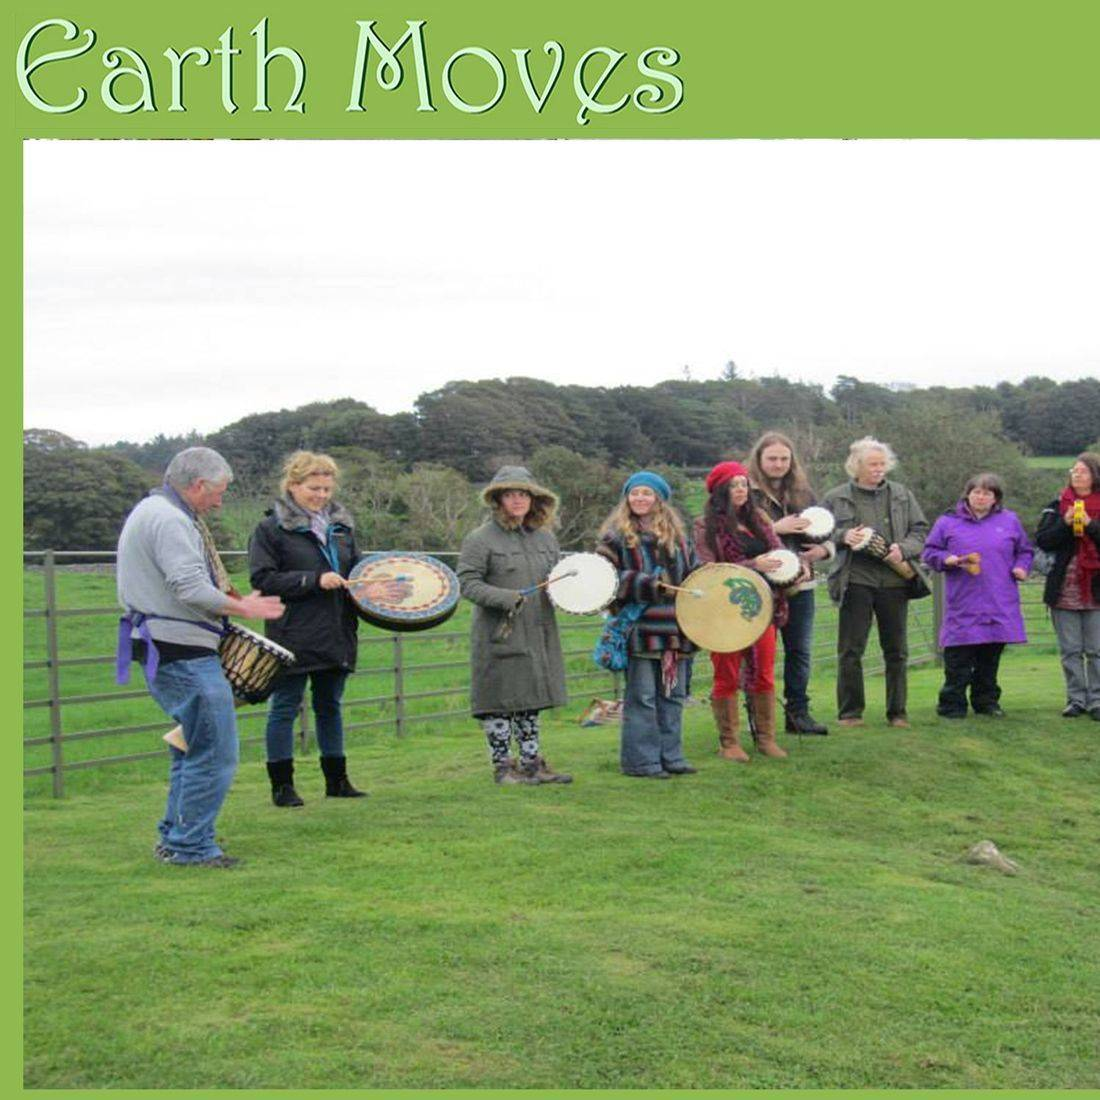 Earthmoves Wales drumming circle rhythm sacred meditative